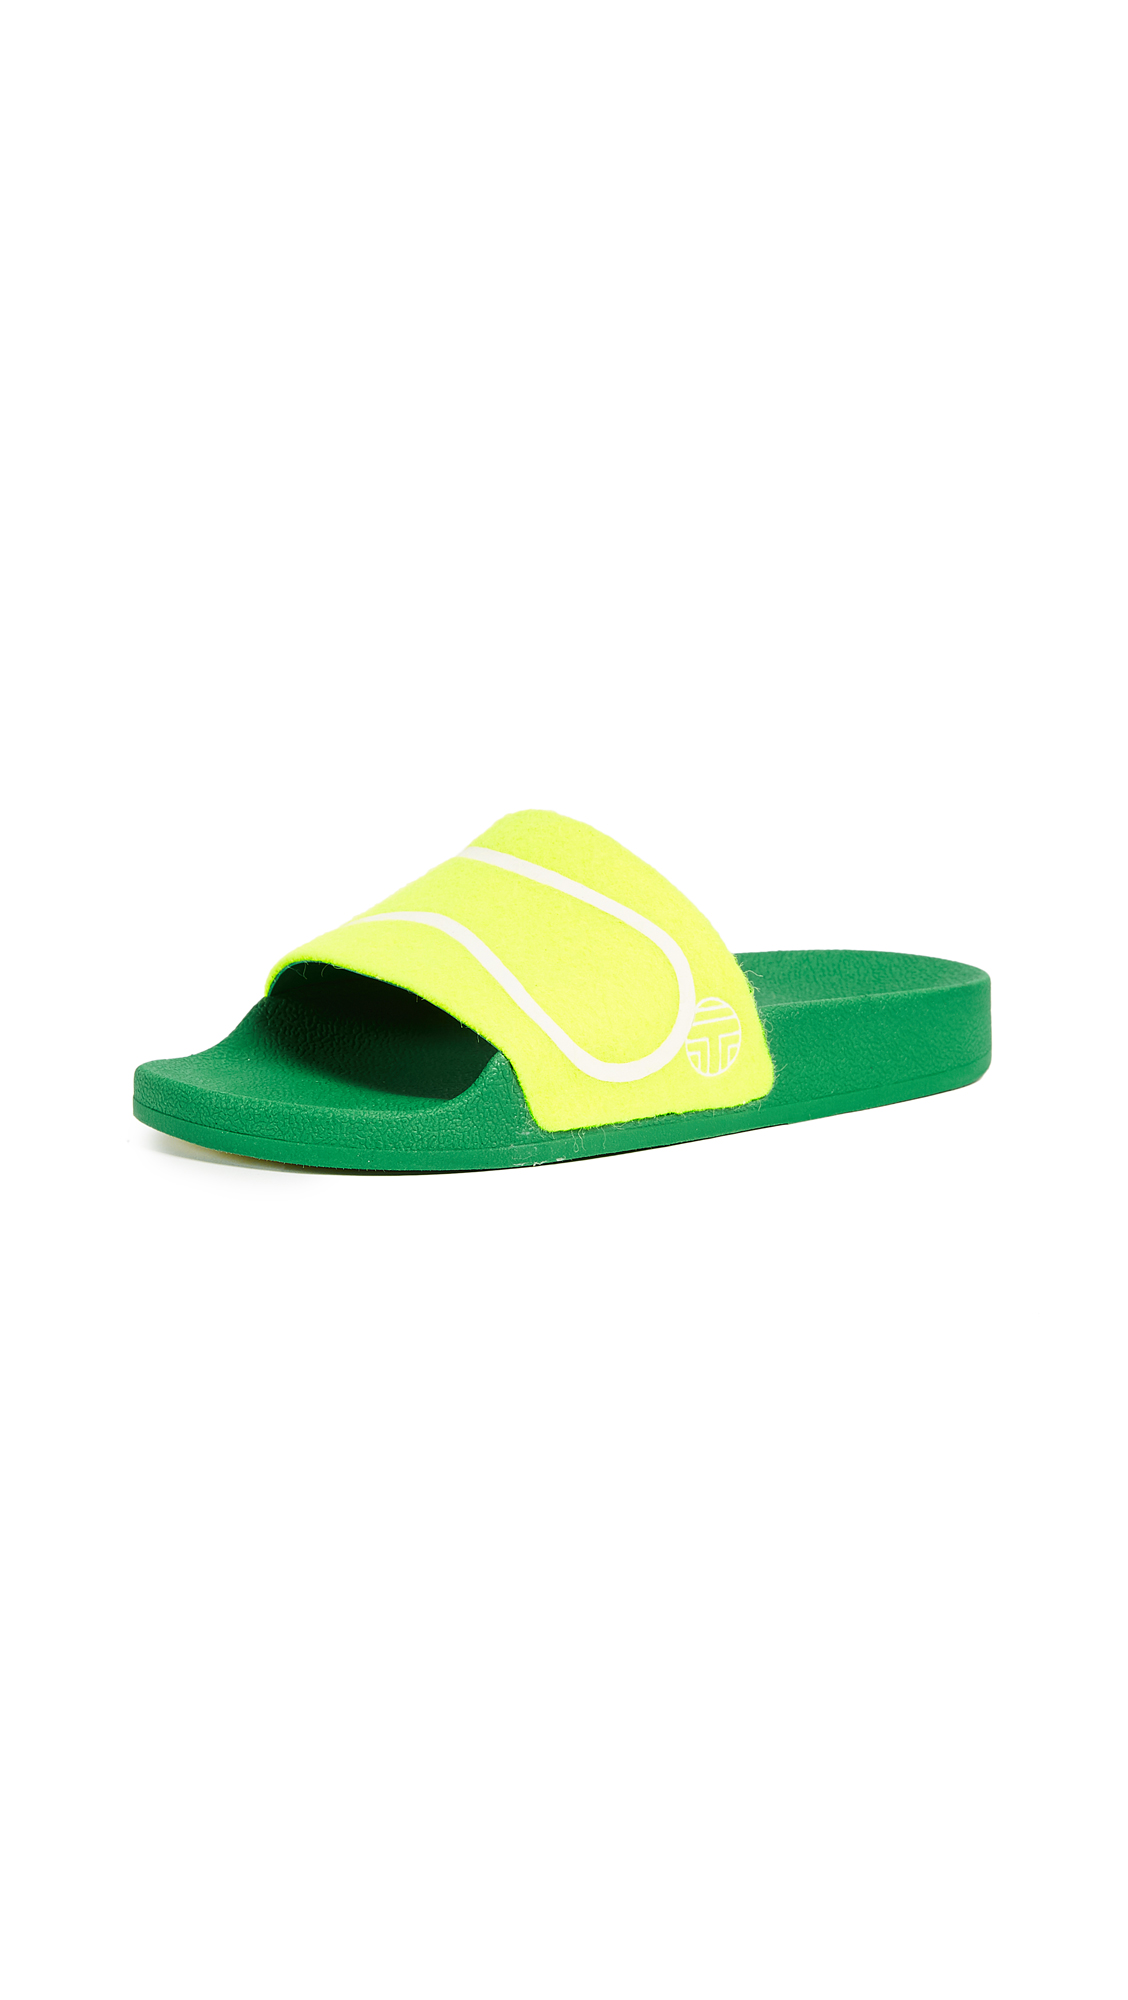 Tory Sport Tennis Ball Slides - Fluo Yellow/Off White